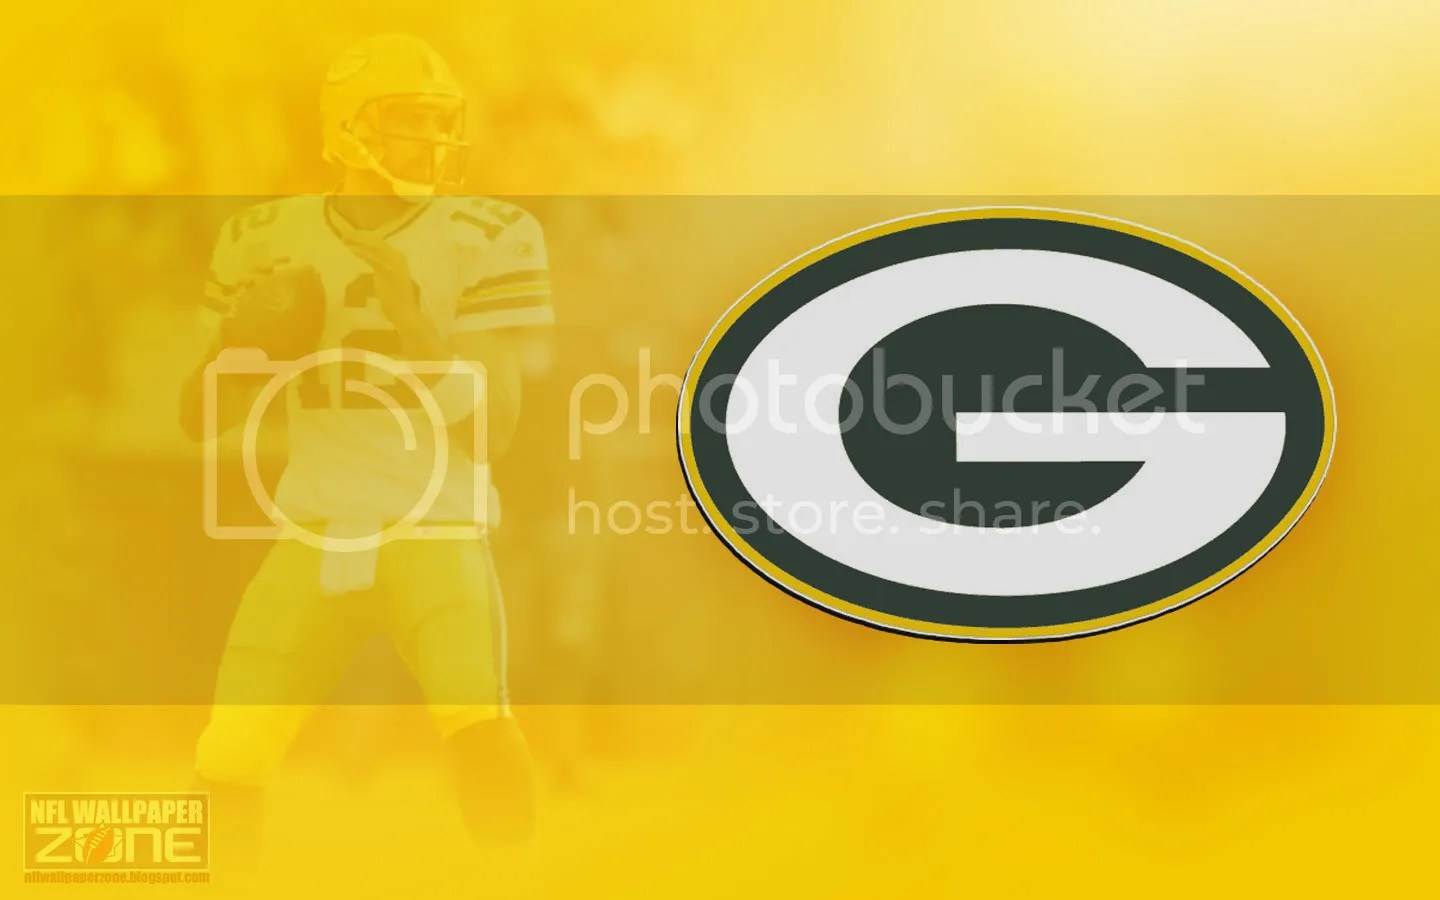 GreenBayPackersWallpaper-1440.jpg Green Bay Packers Wallpaper